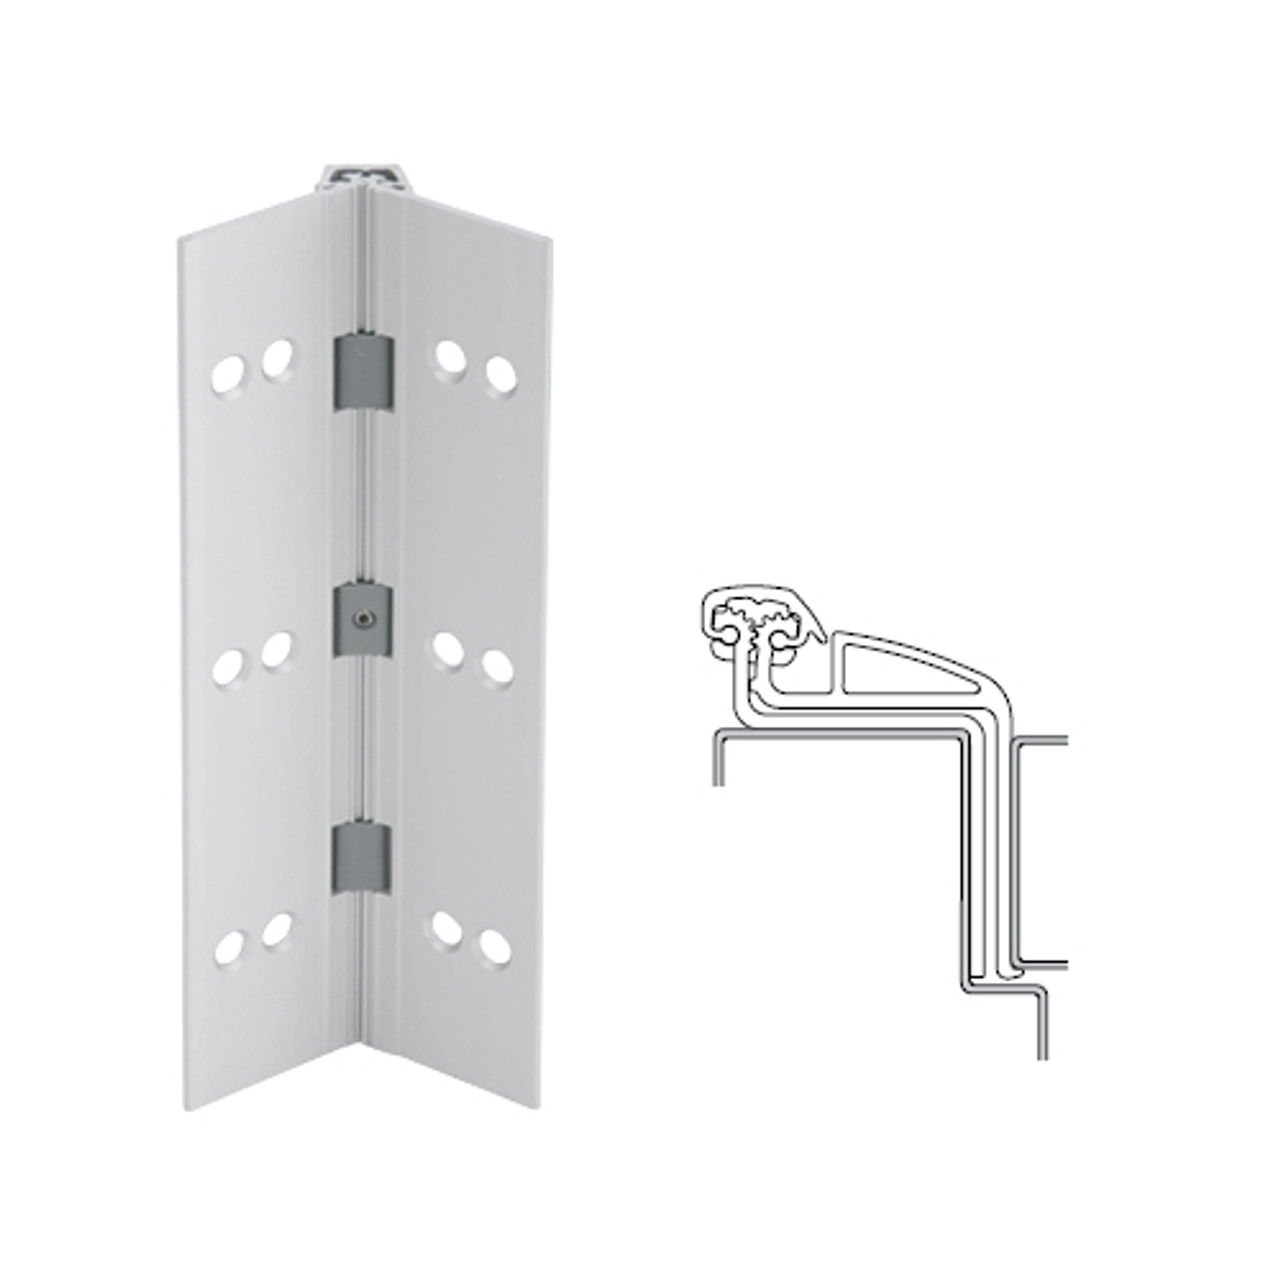 041XY-US28-85 IVES Full Mortise Continuous Geared Hinges in Satin Aluminum